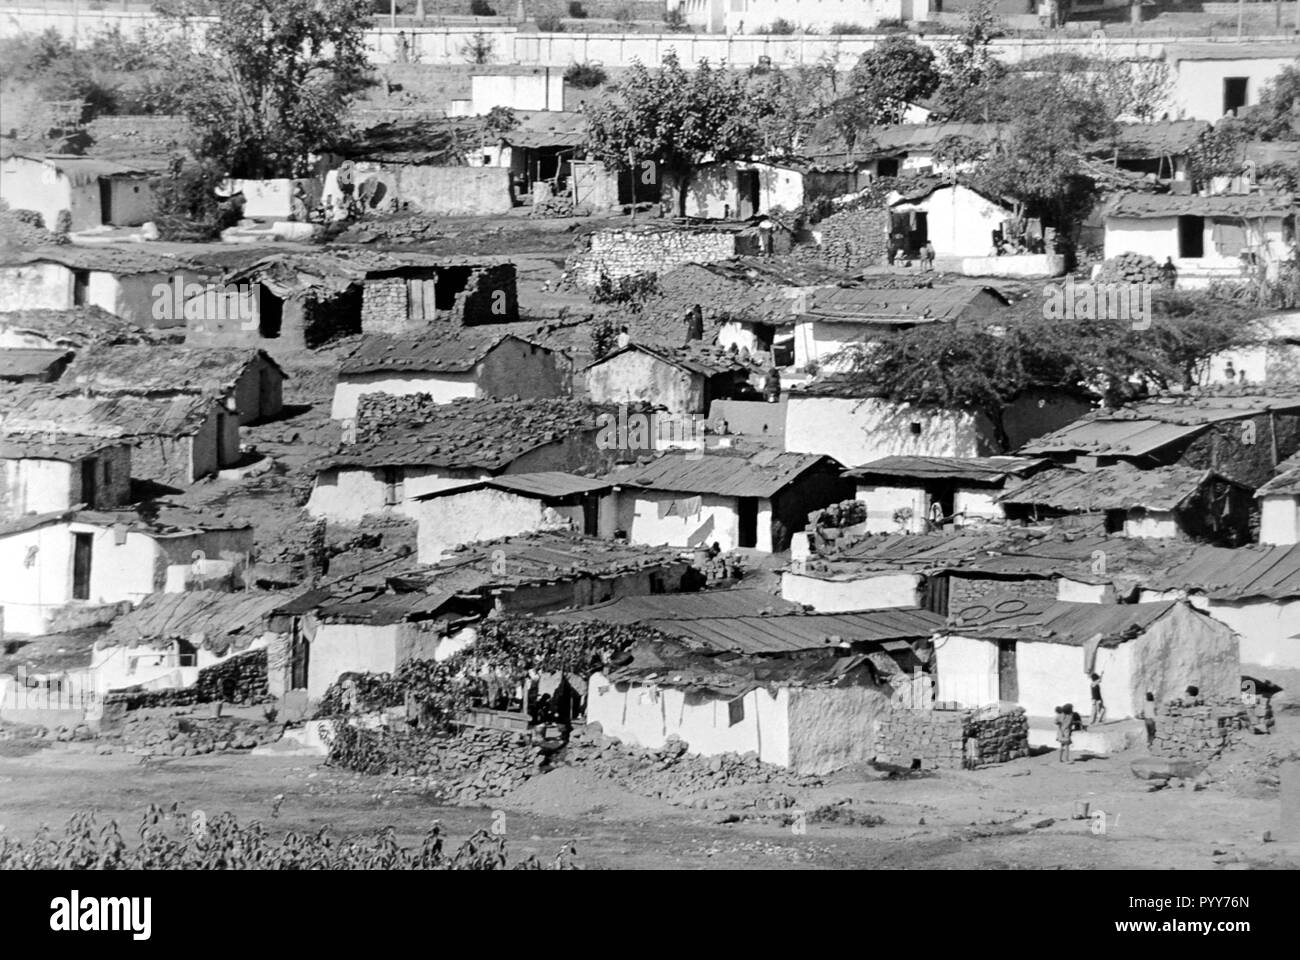 slums, union carbide gas leak tragedy, Bhopal, madhya pradesh, India, Asia - Stock Image